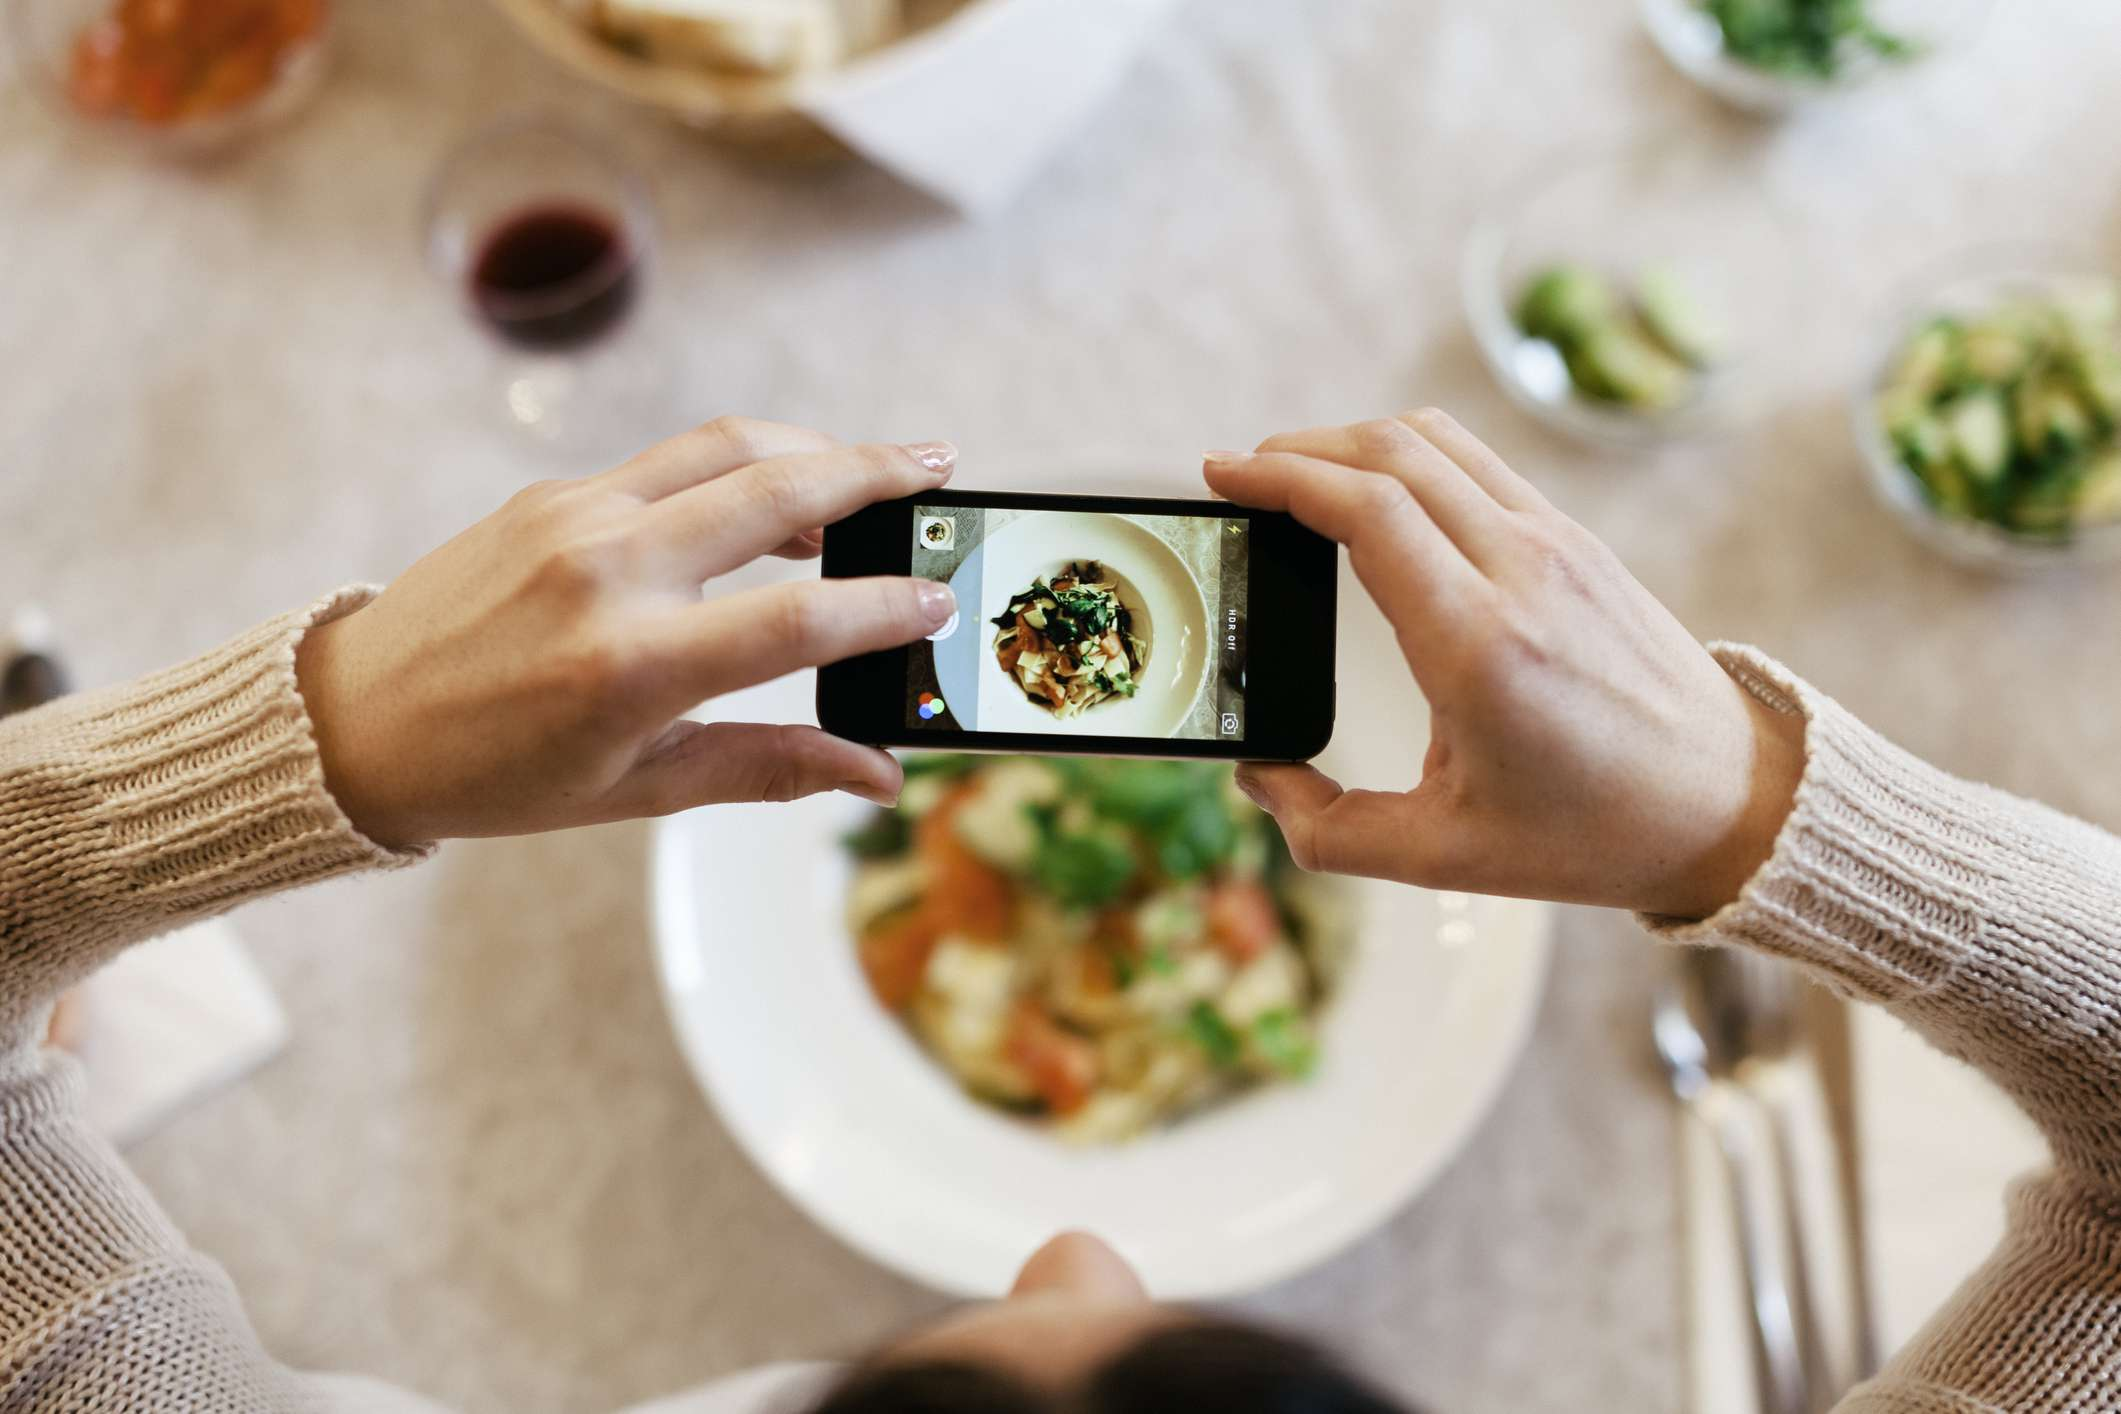 An image of someone taking a photo of their meal with their smartphone.